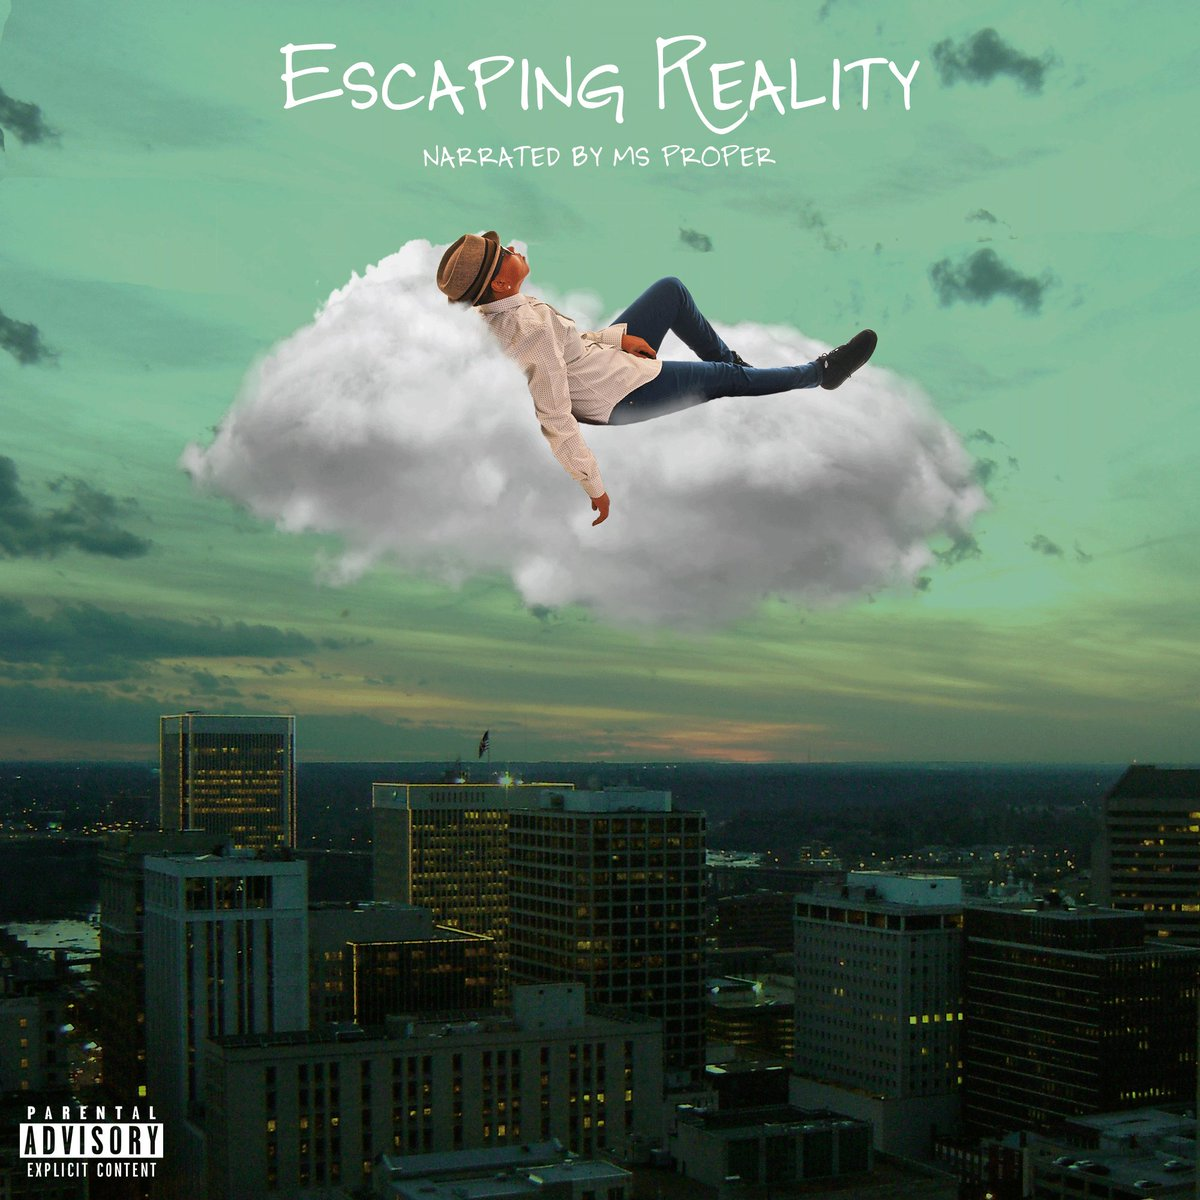 NEW MUSIC: #EscapingReality [ALBUM] https://t.co/srVdoYTZbf https://t.co/AyeOa1VSIE